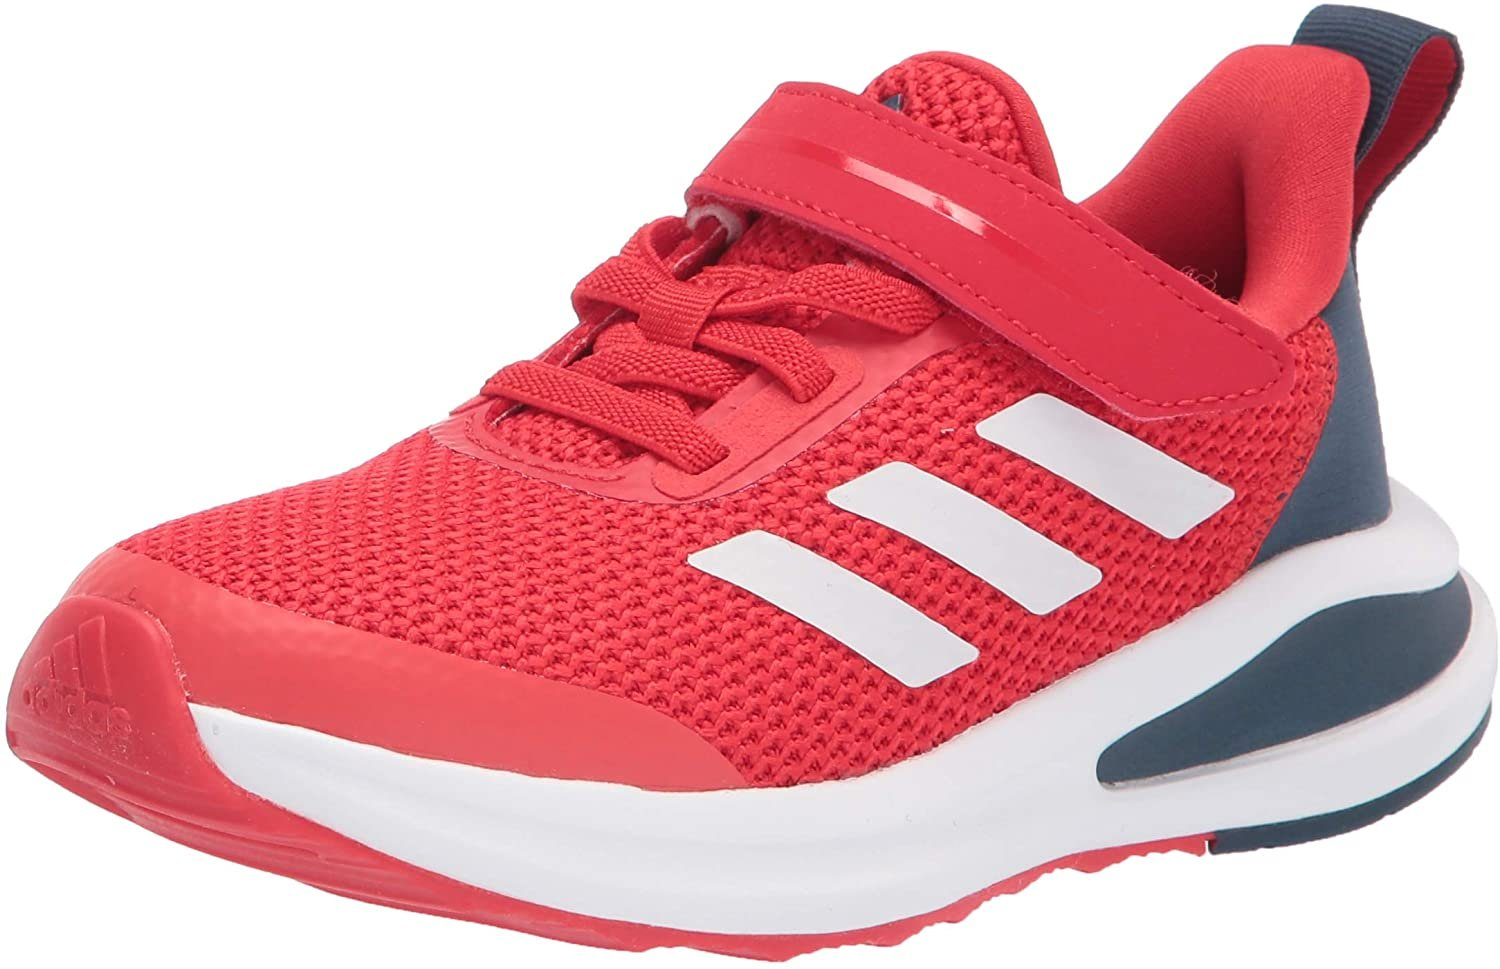 adidas Unisex-Child Fortarun Elastic Cross Trainer